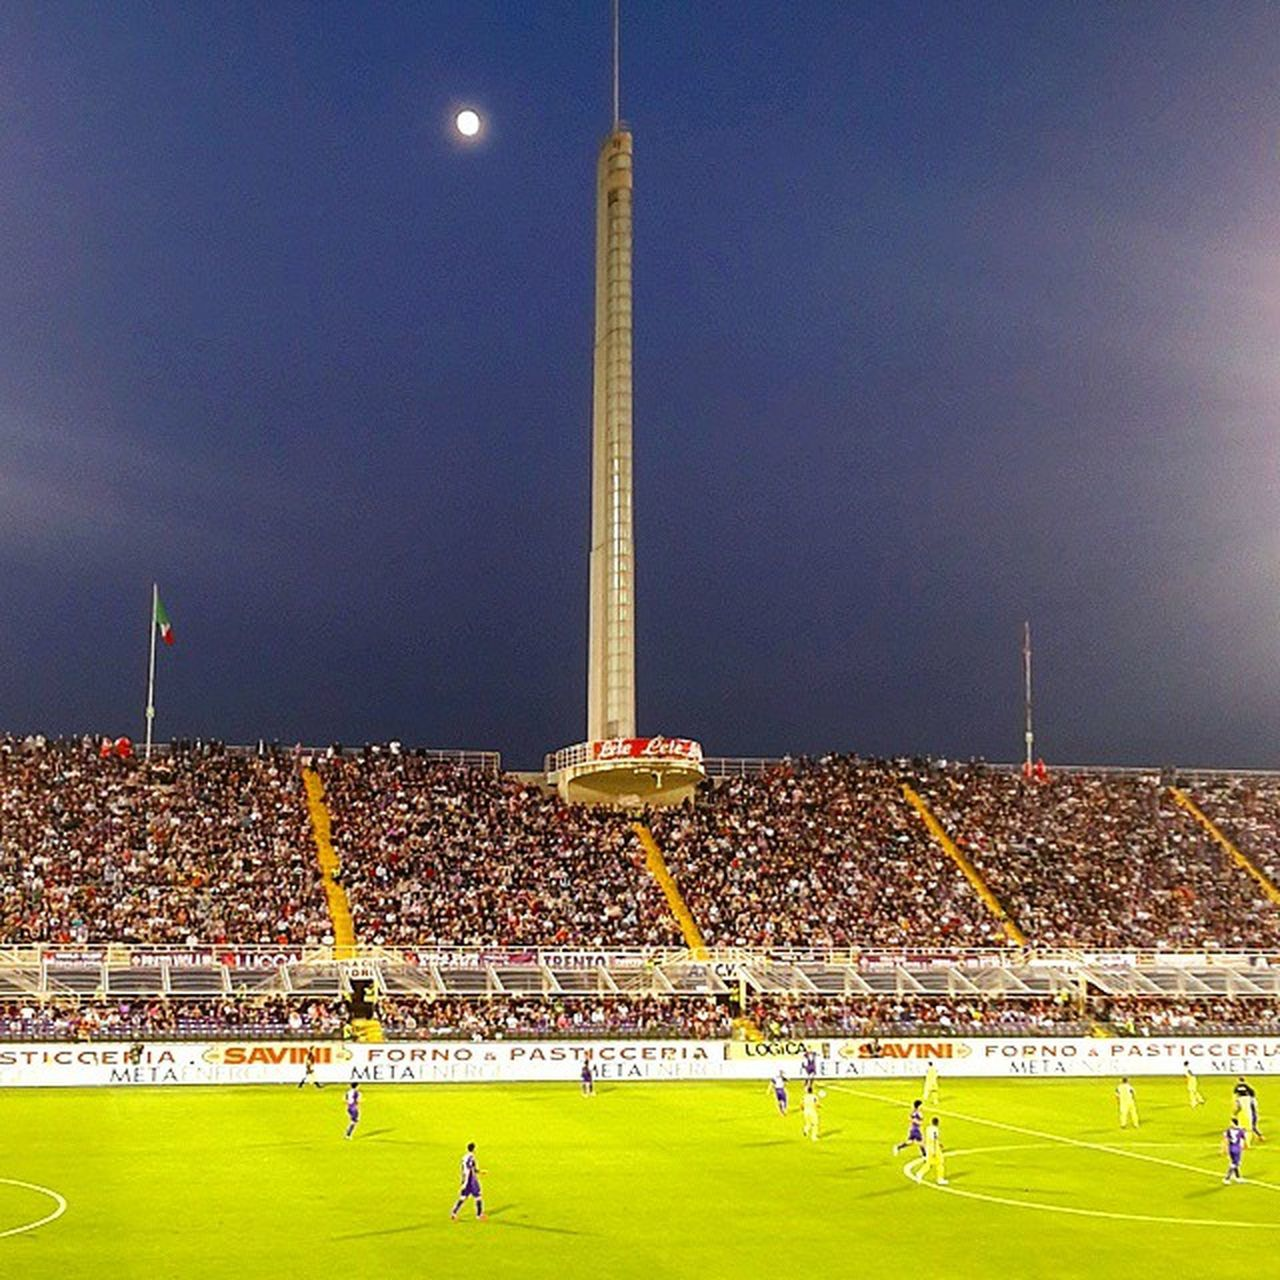 soccer, stadium, large group of people, night, soccer player, blue, sport, soccer field, grass, crowd, spectator, real people, playing, outdoors, sports team, sky, fan - enthusiast, sportsman, people, adult